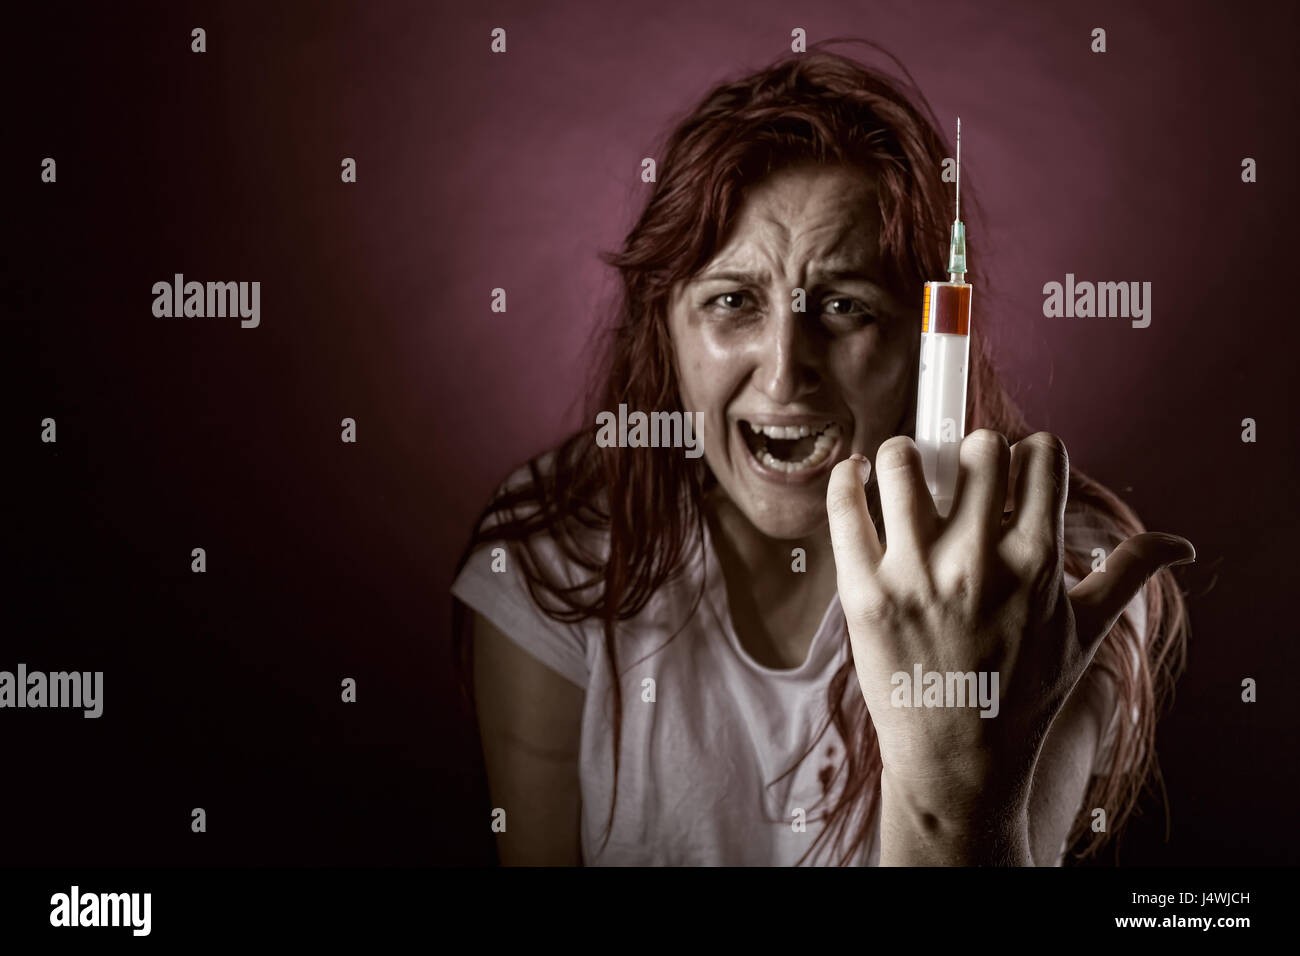 Weeping Woman addict. Focus on the syringe - Stock Image